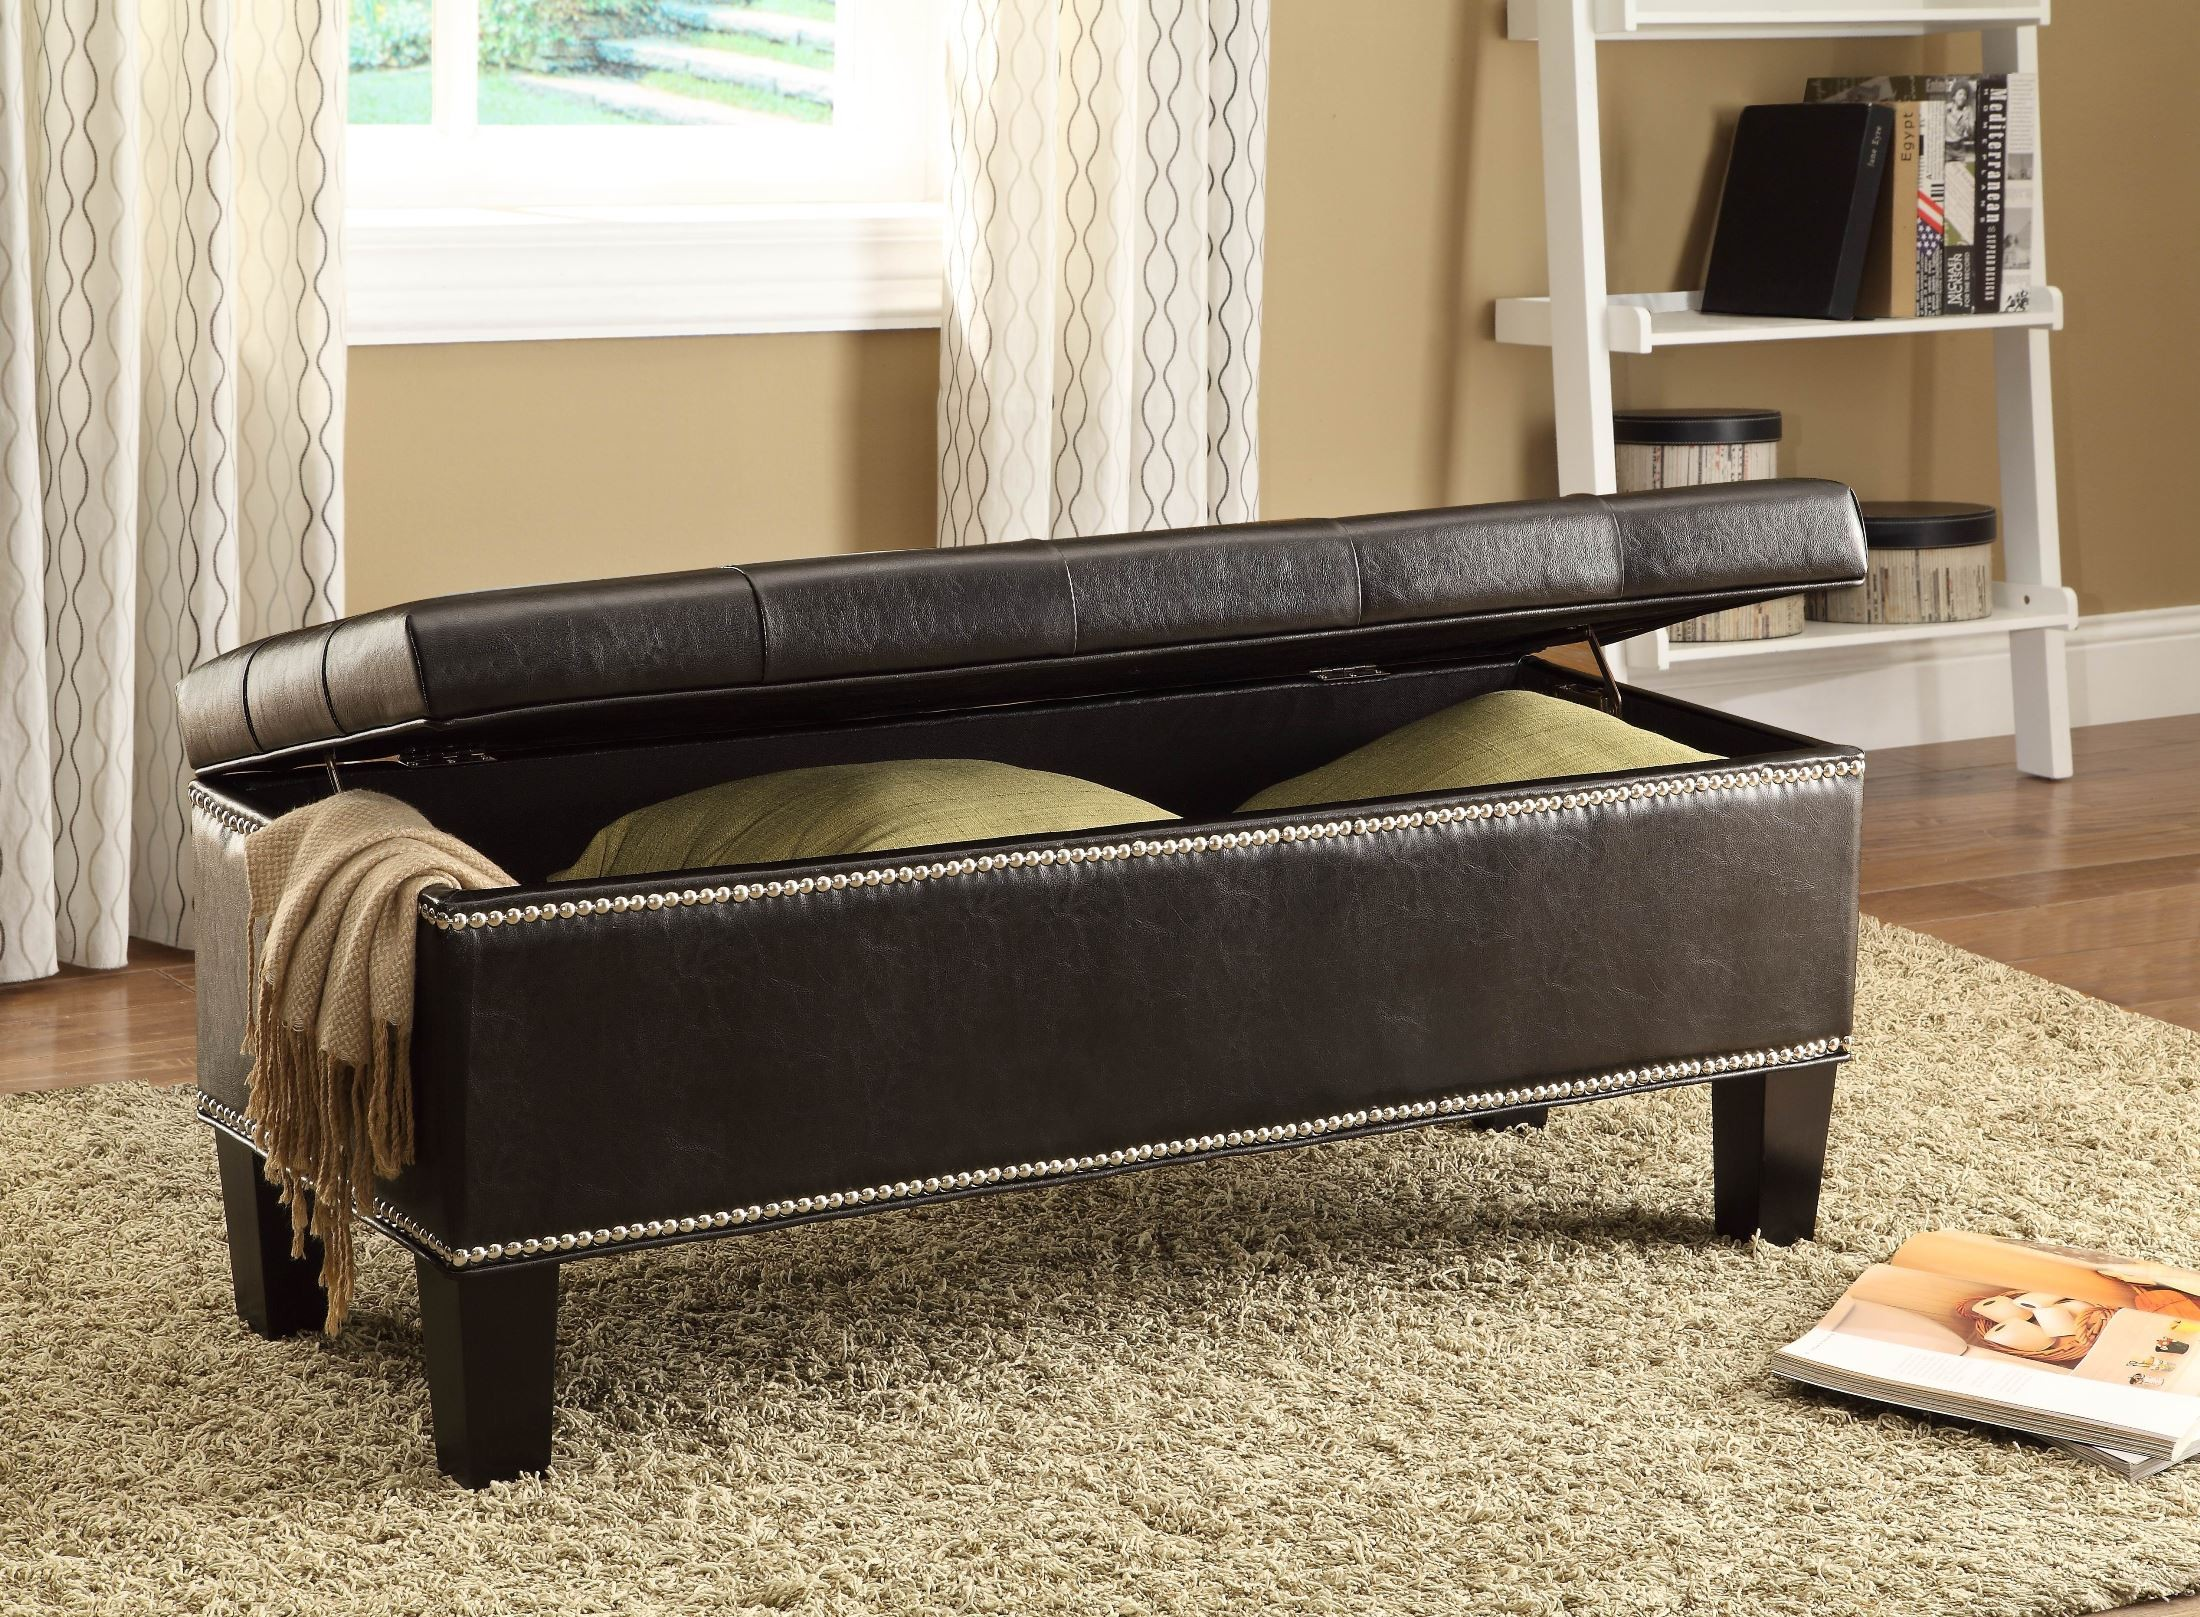 Reverie Lift Top Storage Bench From Homelegance 4602pu